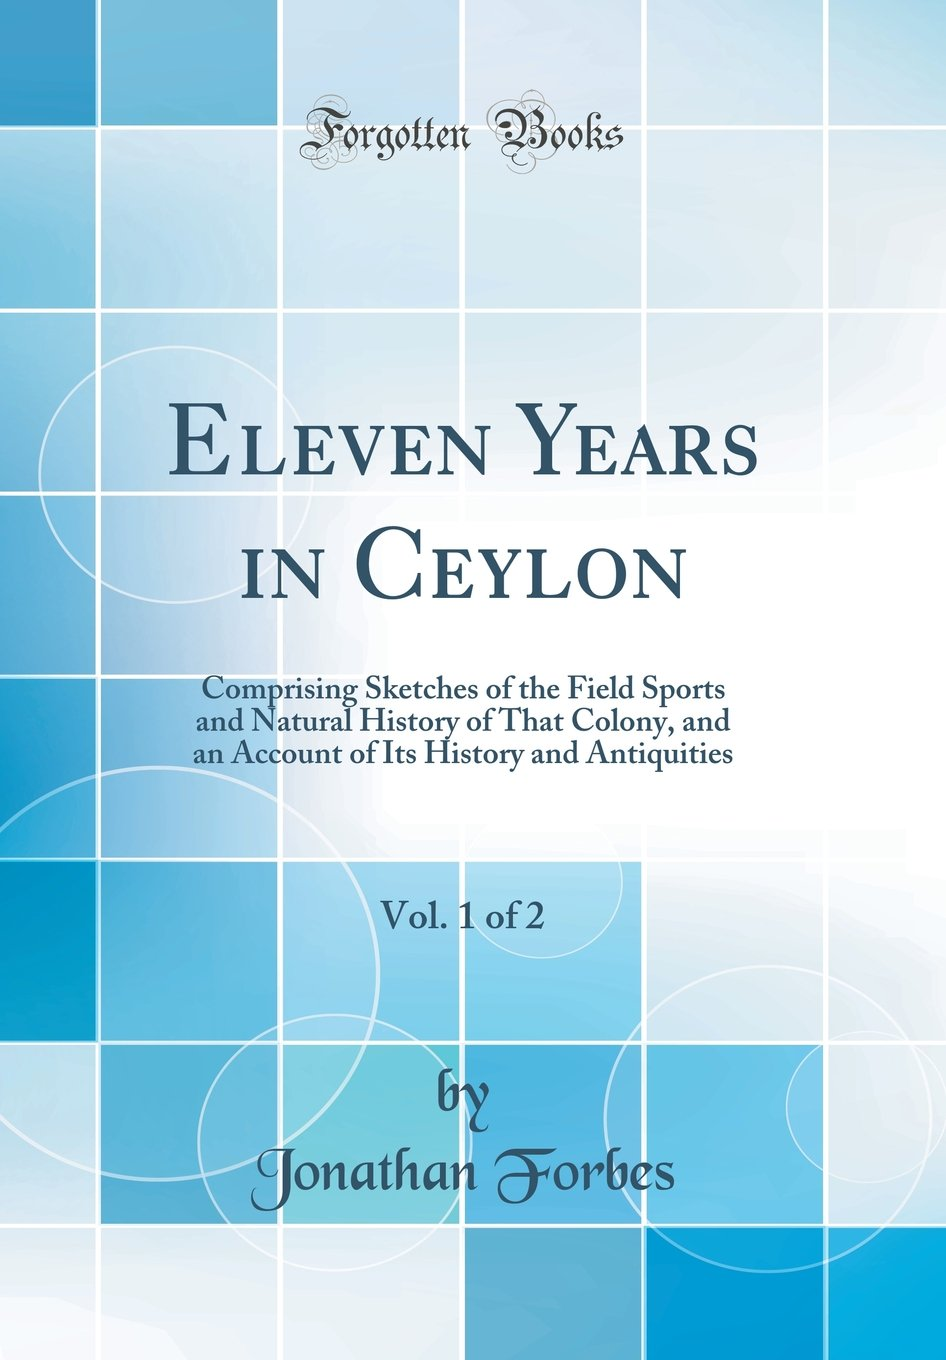 Eleven Years in Ceylon, Vol. 1 of 2: Comprising Sketches of the Field Sports and Natural History of That Colony, and an Account of Its History and Antiquities (Classic Reprint)